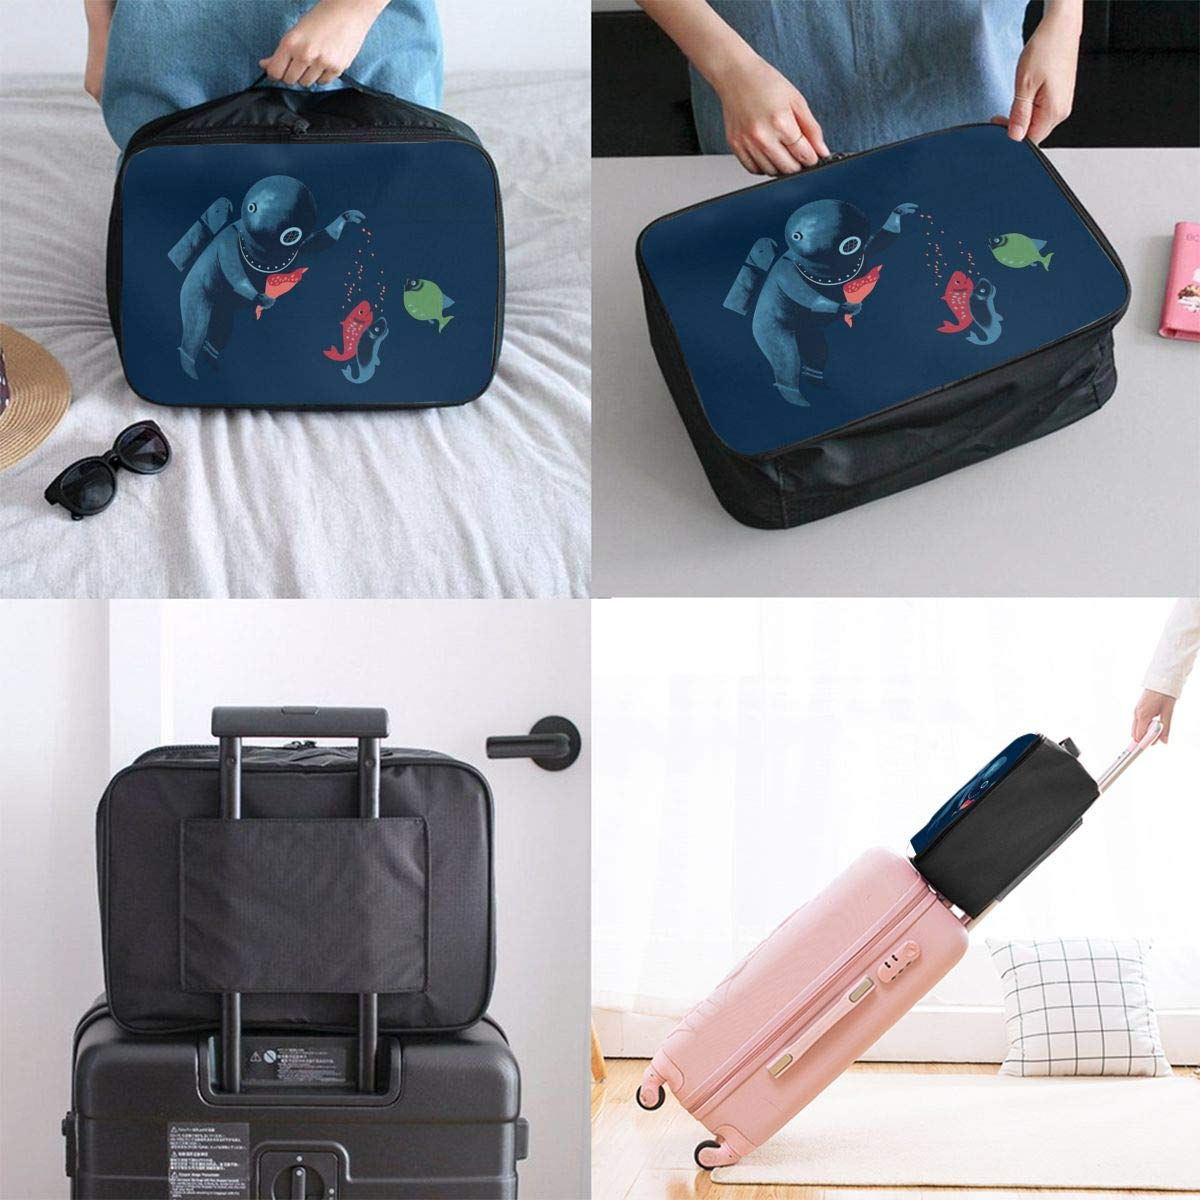 Diver Feeding Fishes Friend Travel Lightweight Waterproof Folding Storage Portable Luggage Duffle Tote Bag Large Capacity In Trolley Handle Bags 6x11x15 Inch